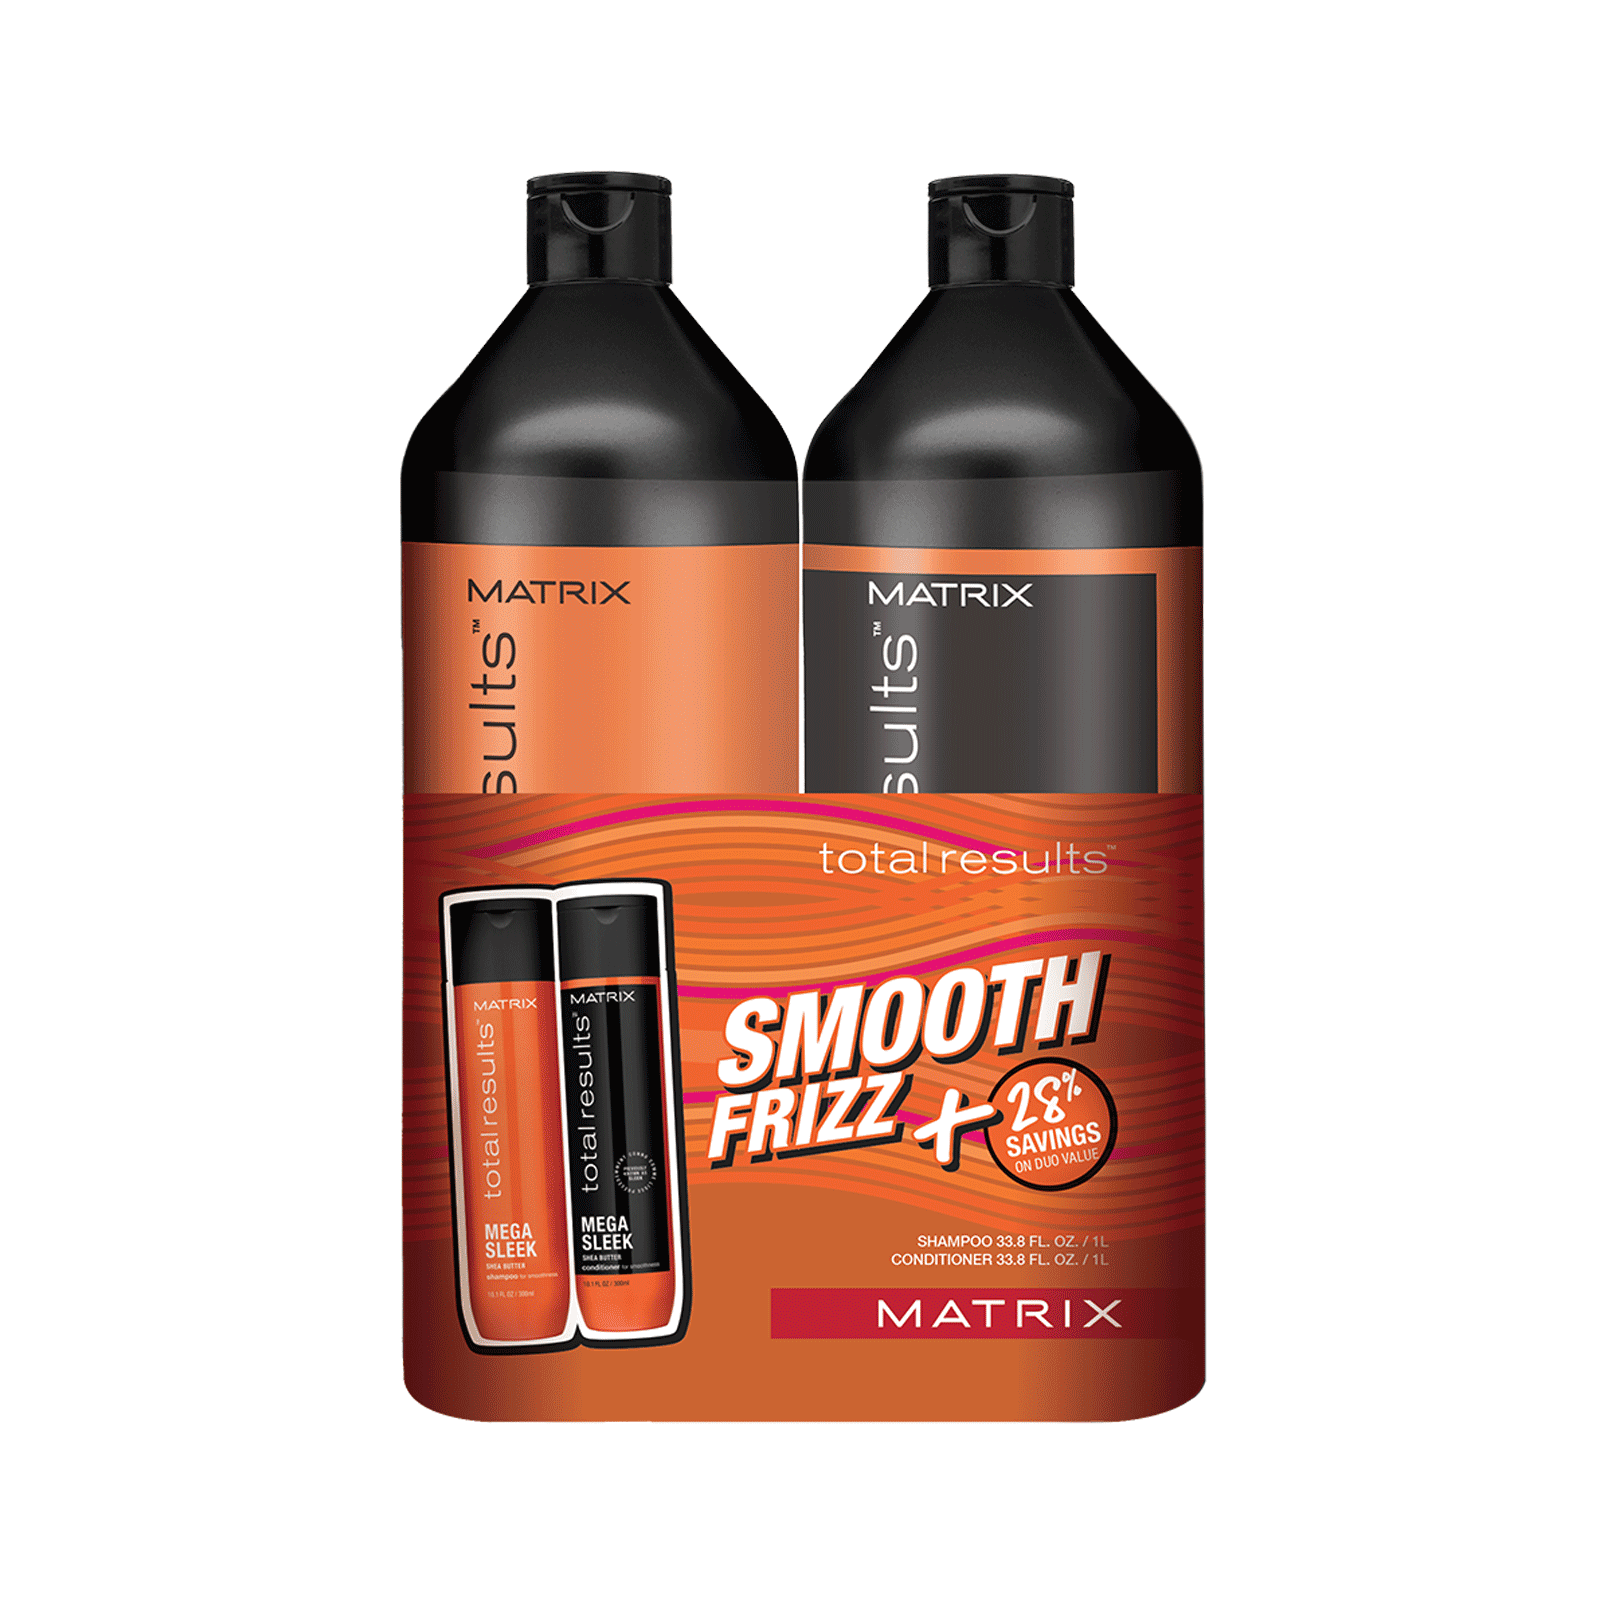 Total Results Mega Sleek Shampoo, Conditioner Liter Duo